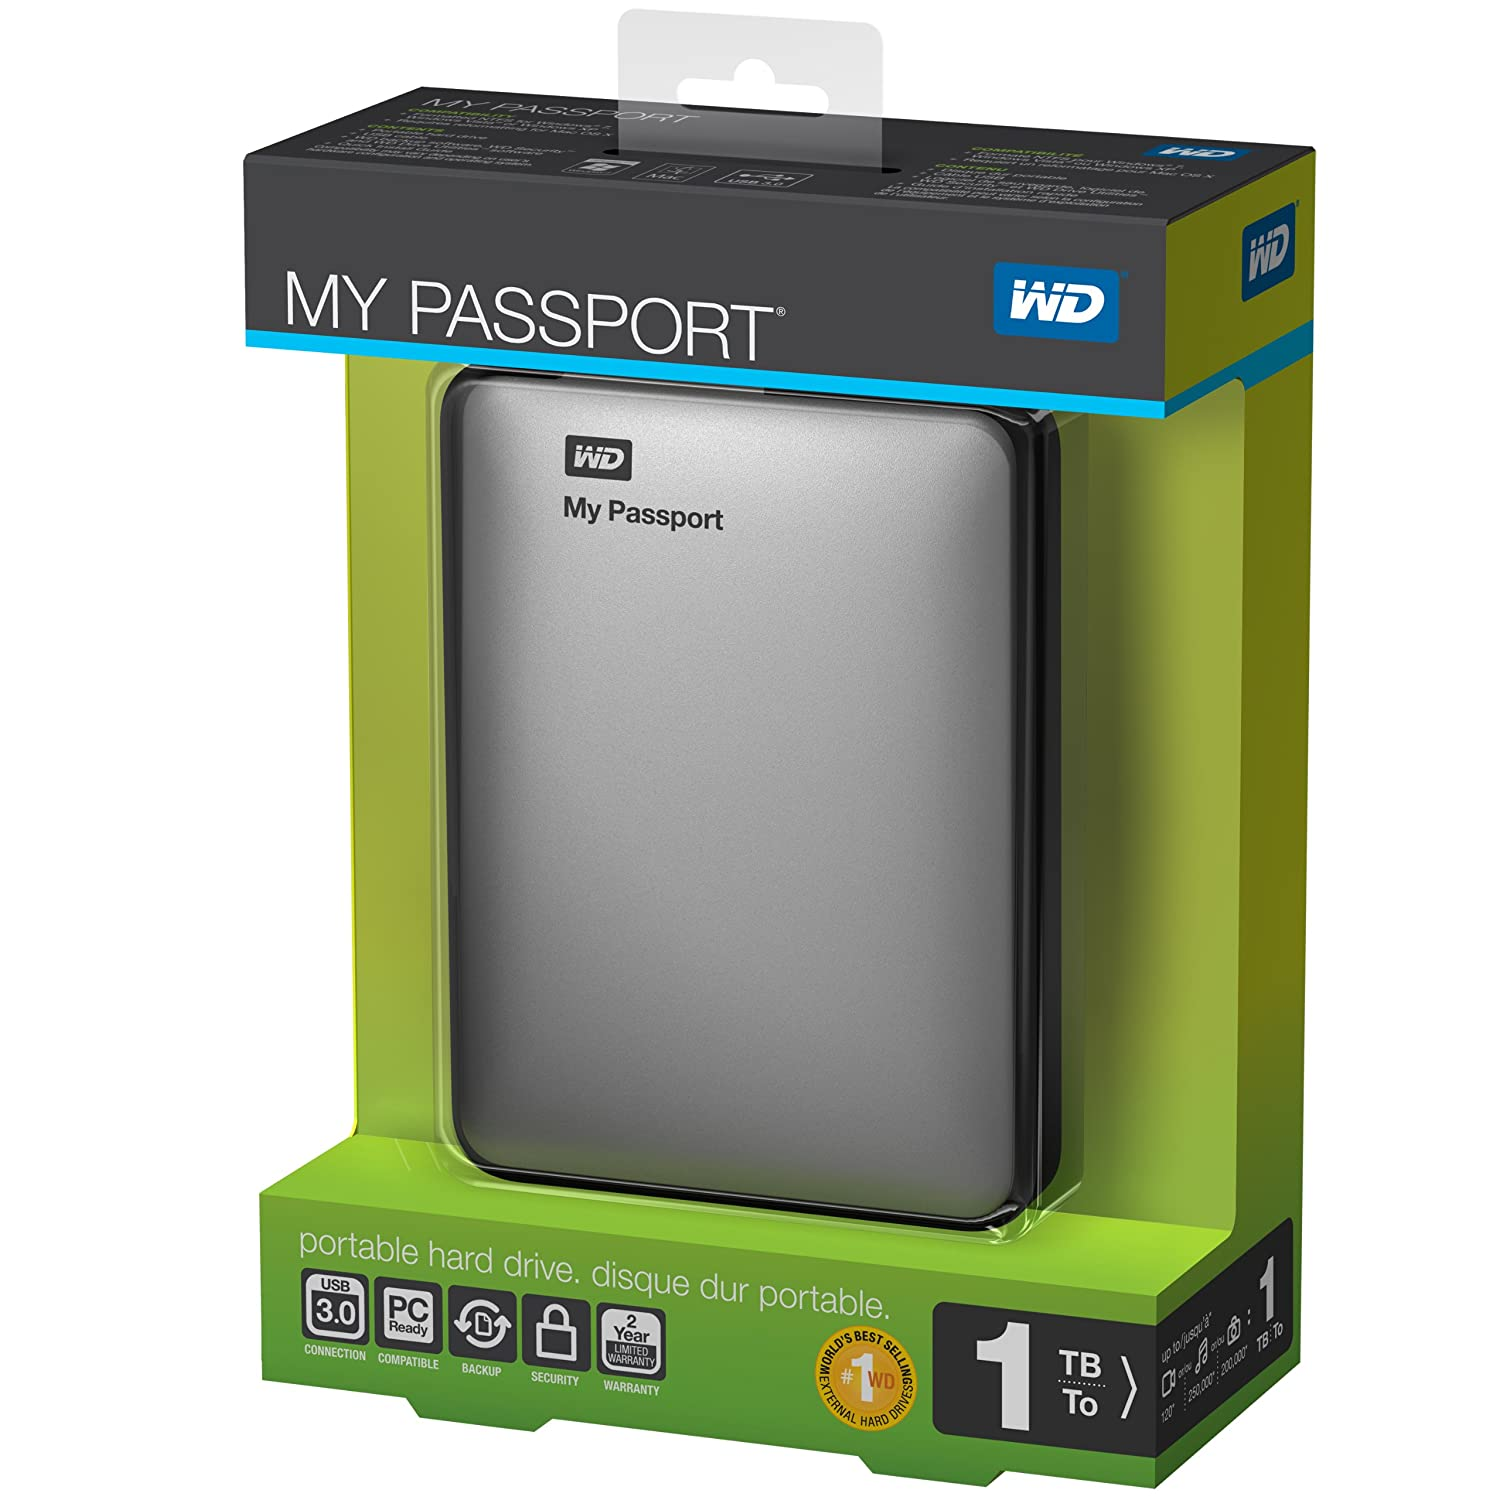 WD My passport - Not recognized in Win 10 - Windows 10 Forums